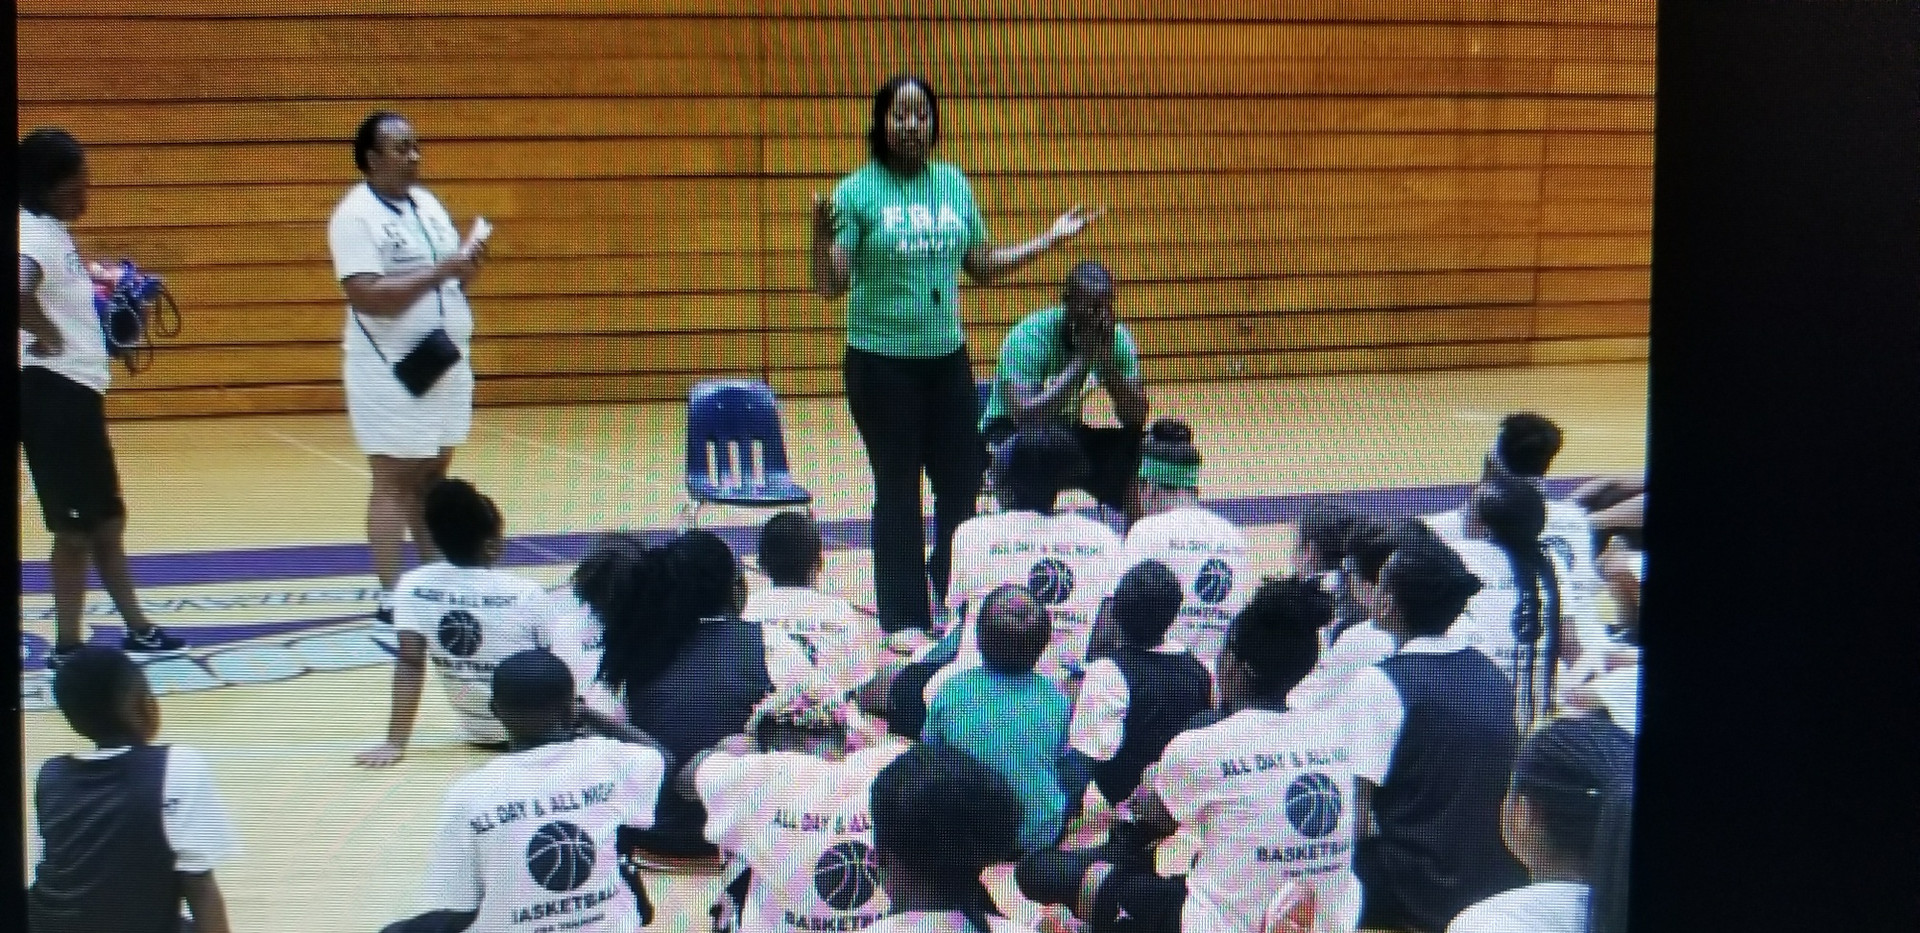 Coach Dee speaking to campers